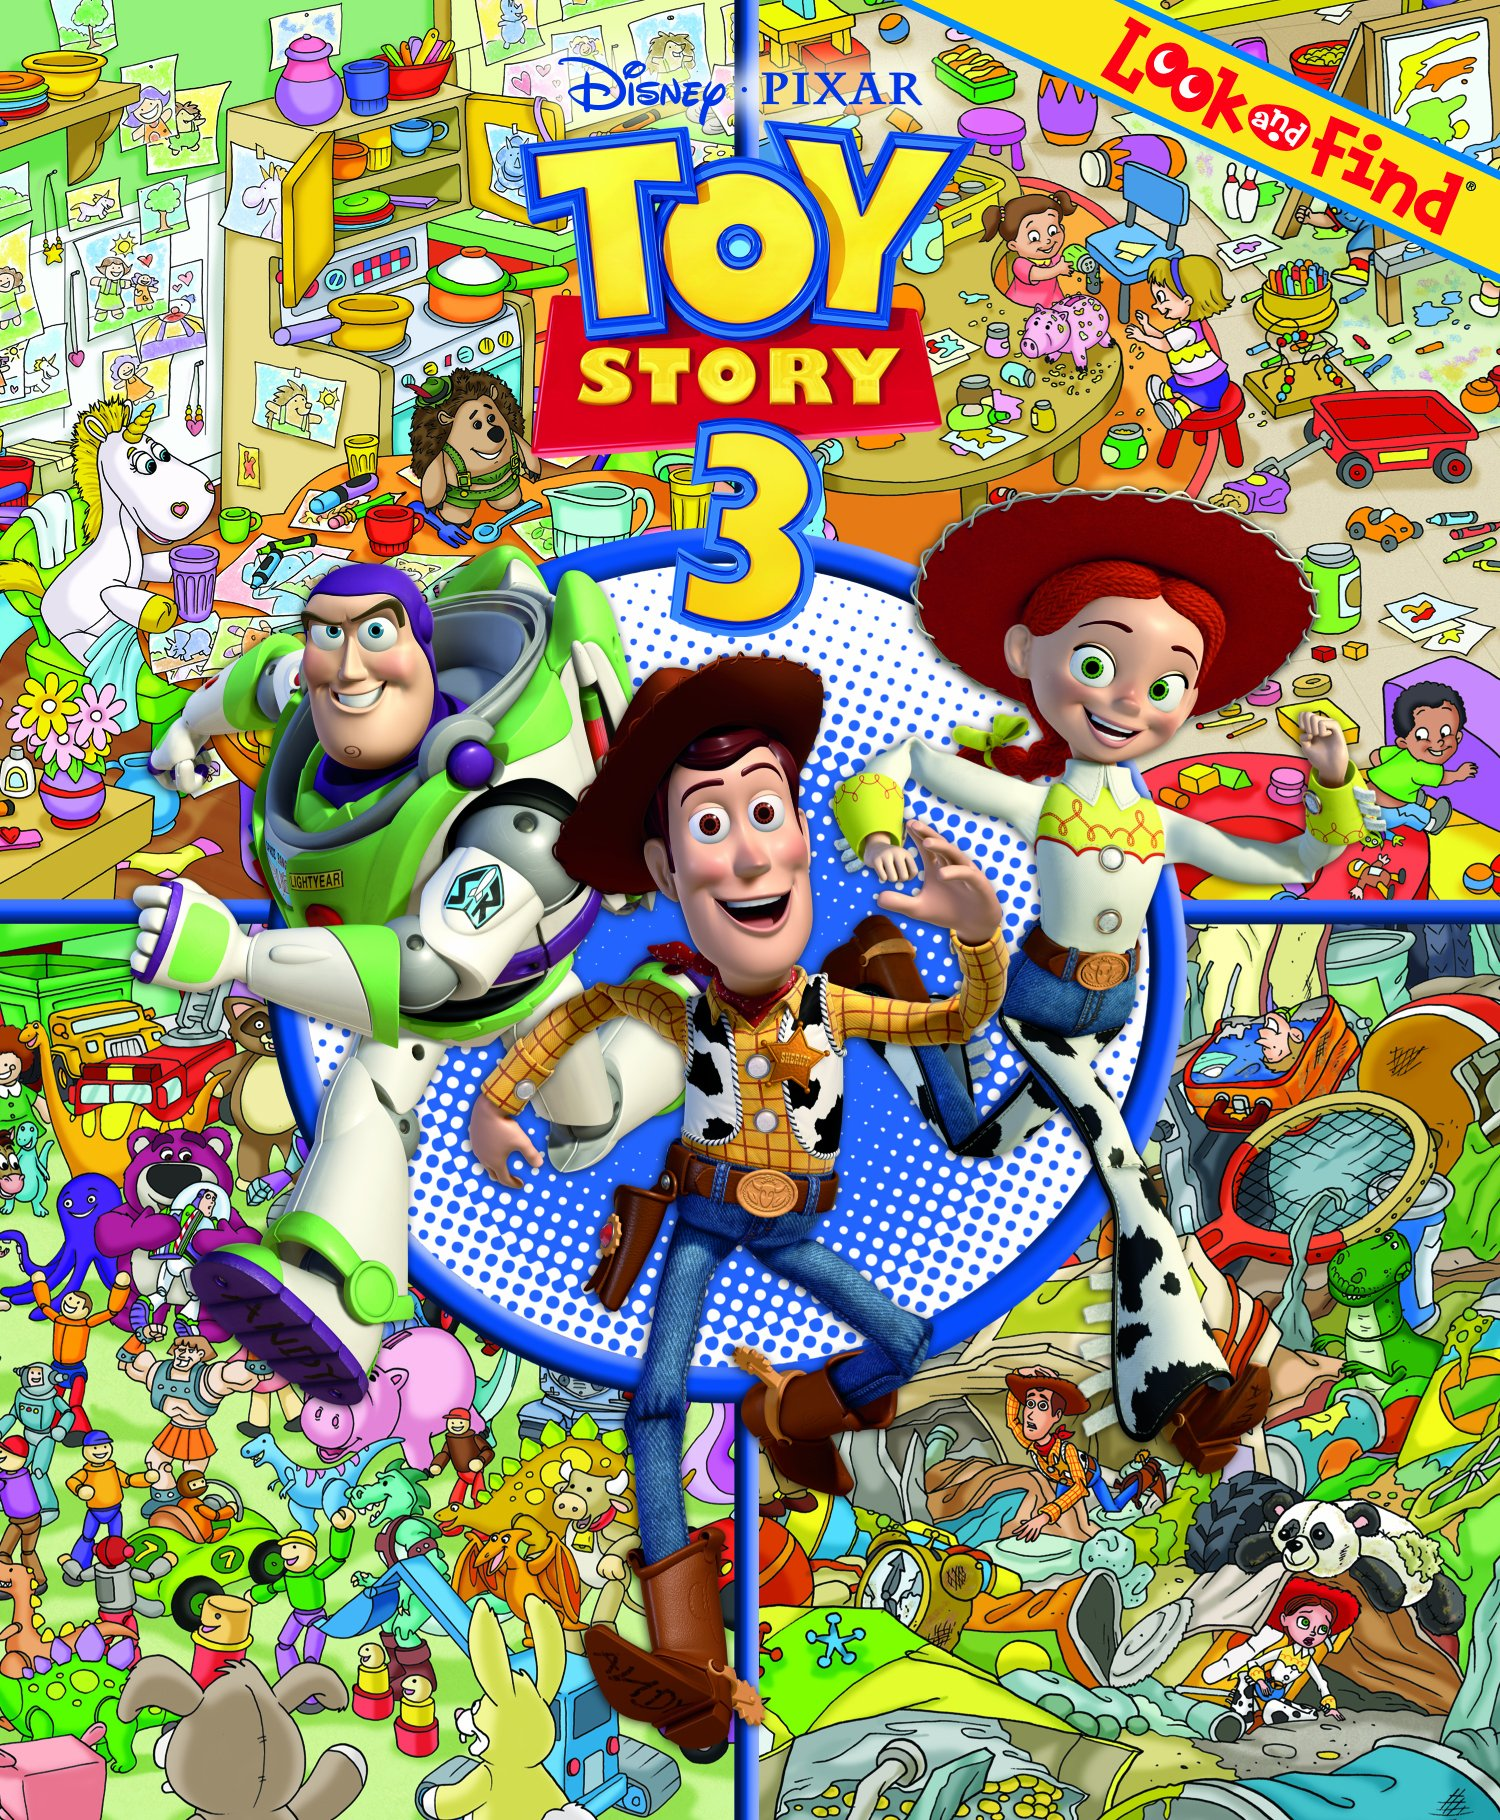 Toy Story 3 Look And Find Art Mawhinney 9781605531342 Amazon Com